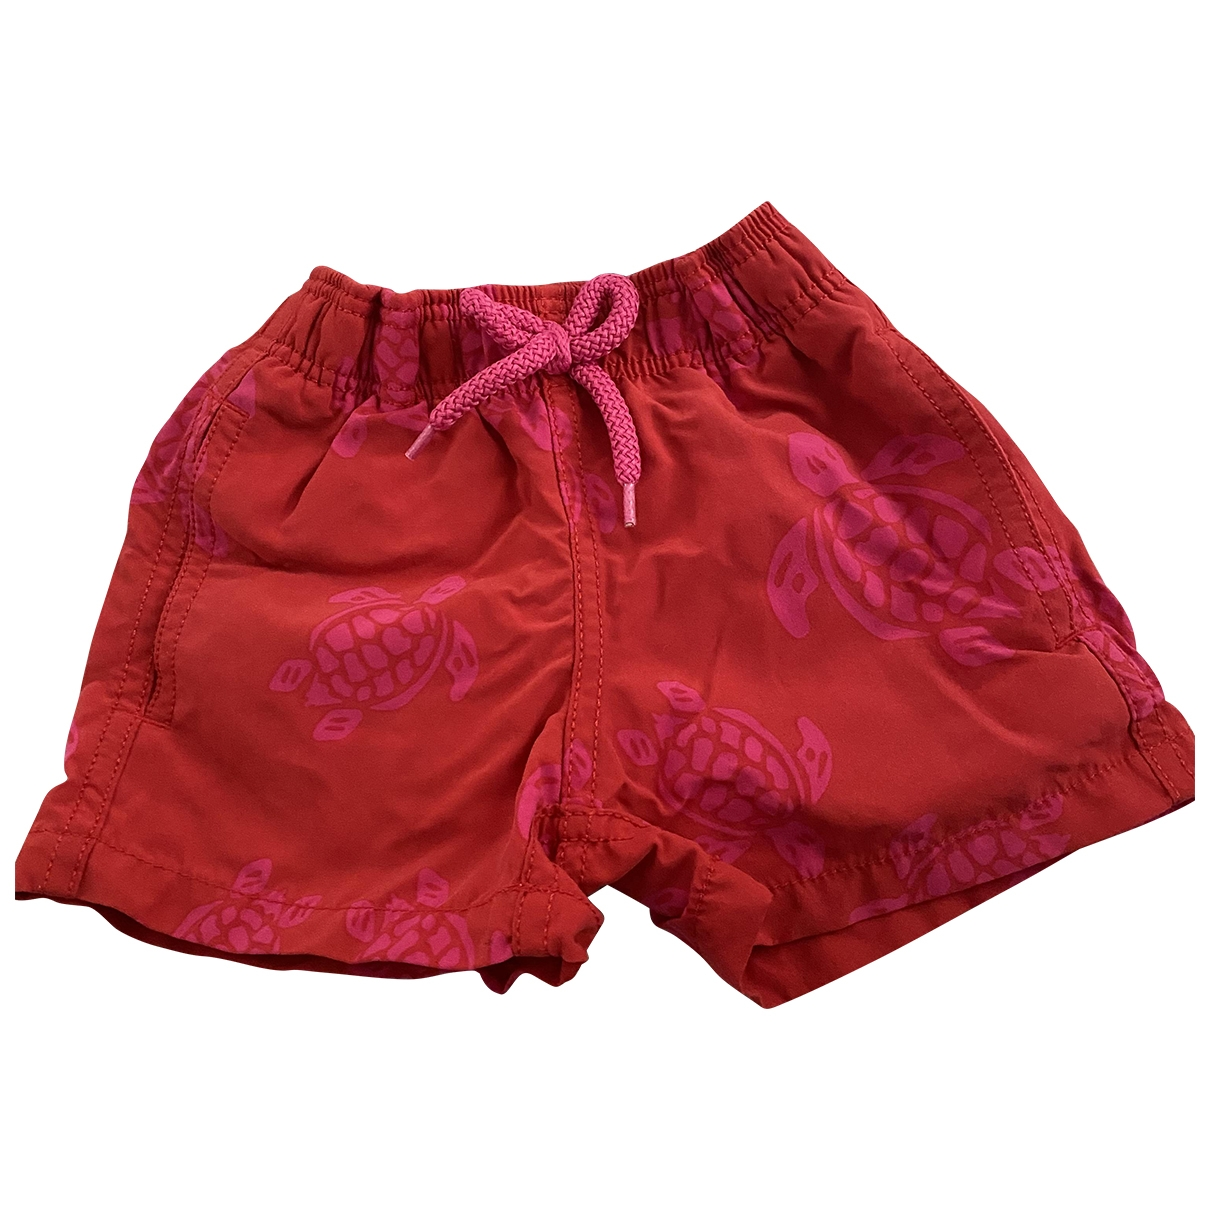 Vilebrequin \N Red Cloth Shorts for Kids 2 years - until 34 inches UK